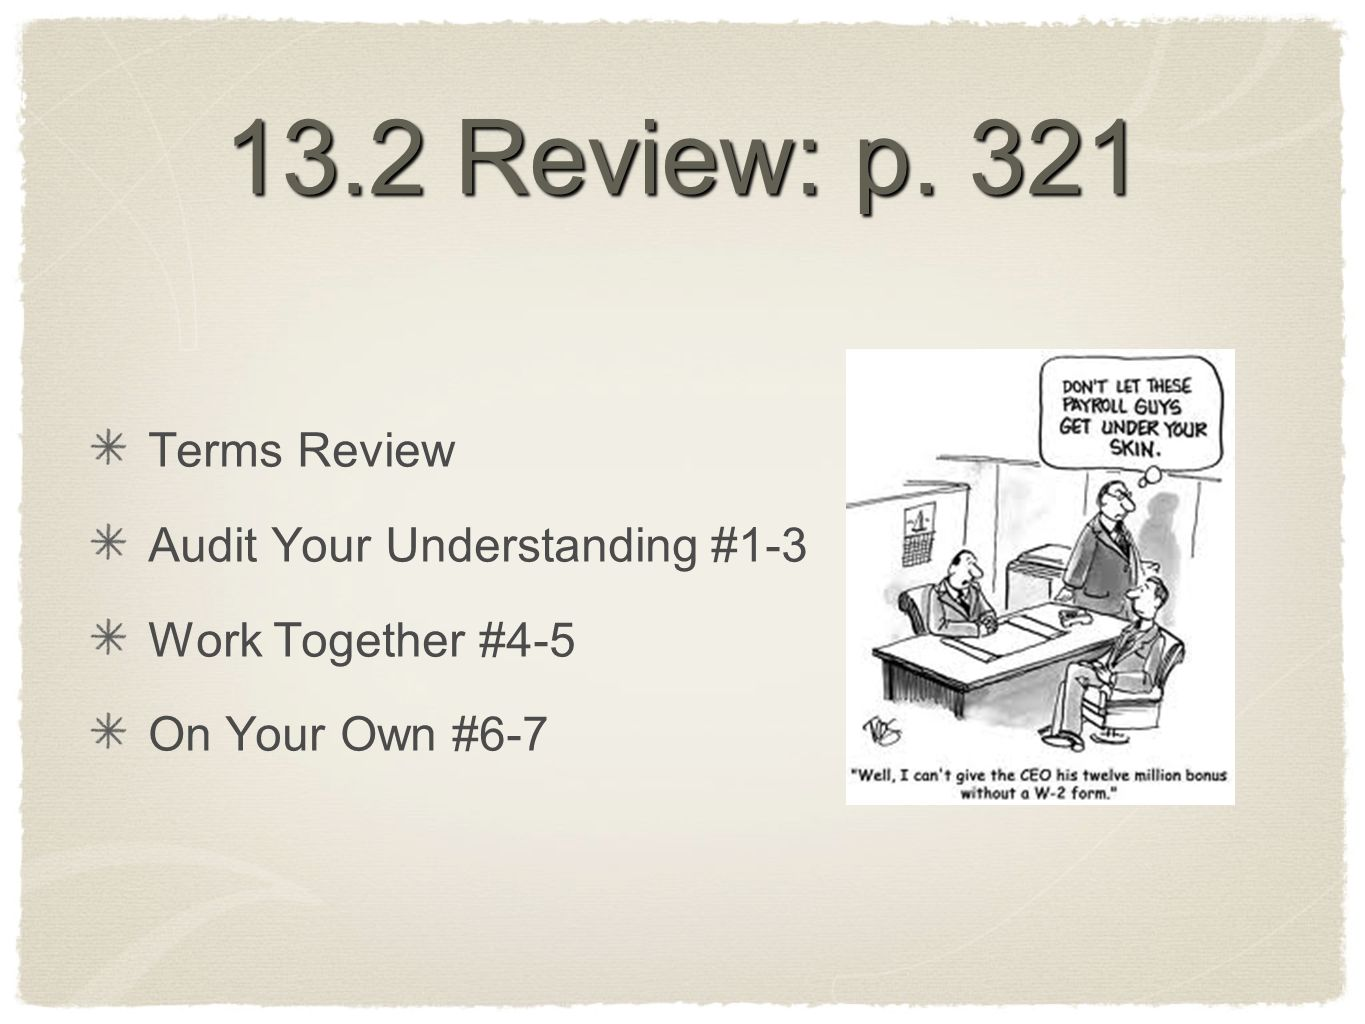 13.2 Review: p. 321 Terms Review Audit Your Understanding #1-3